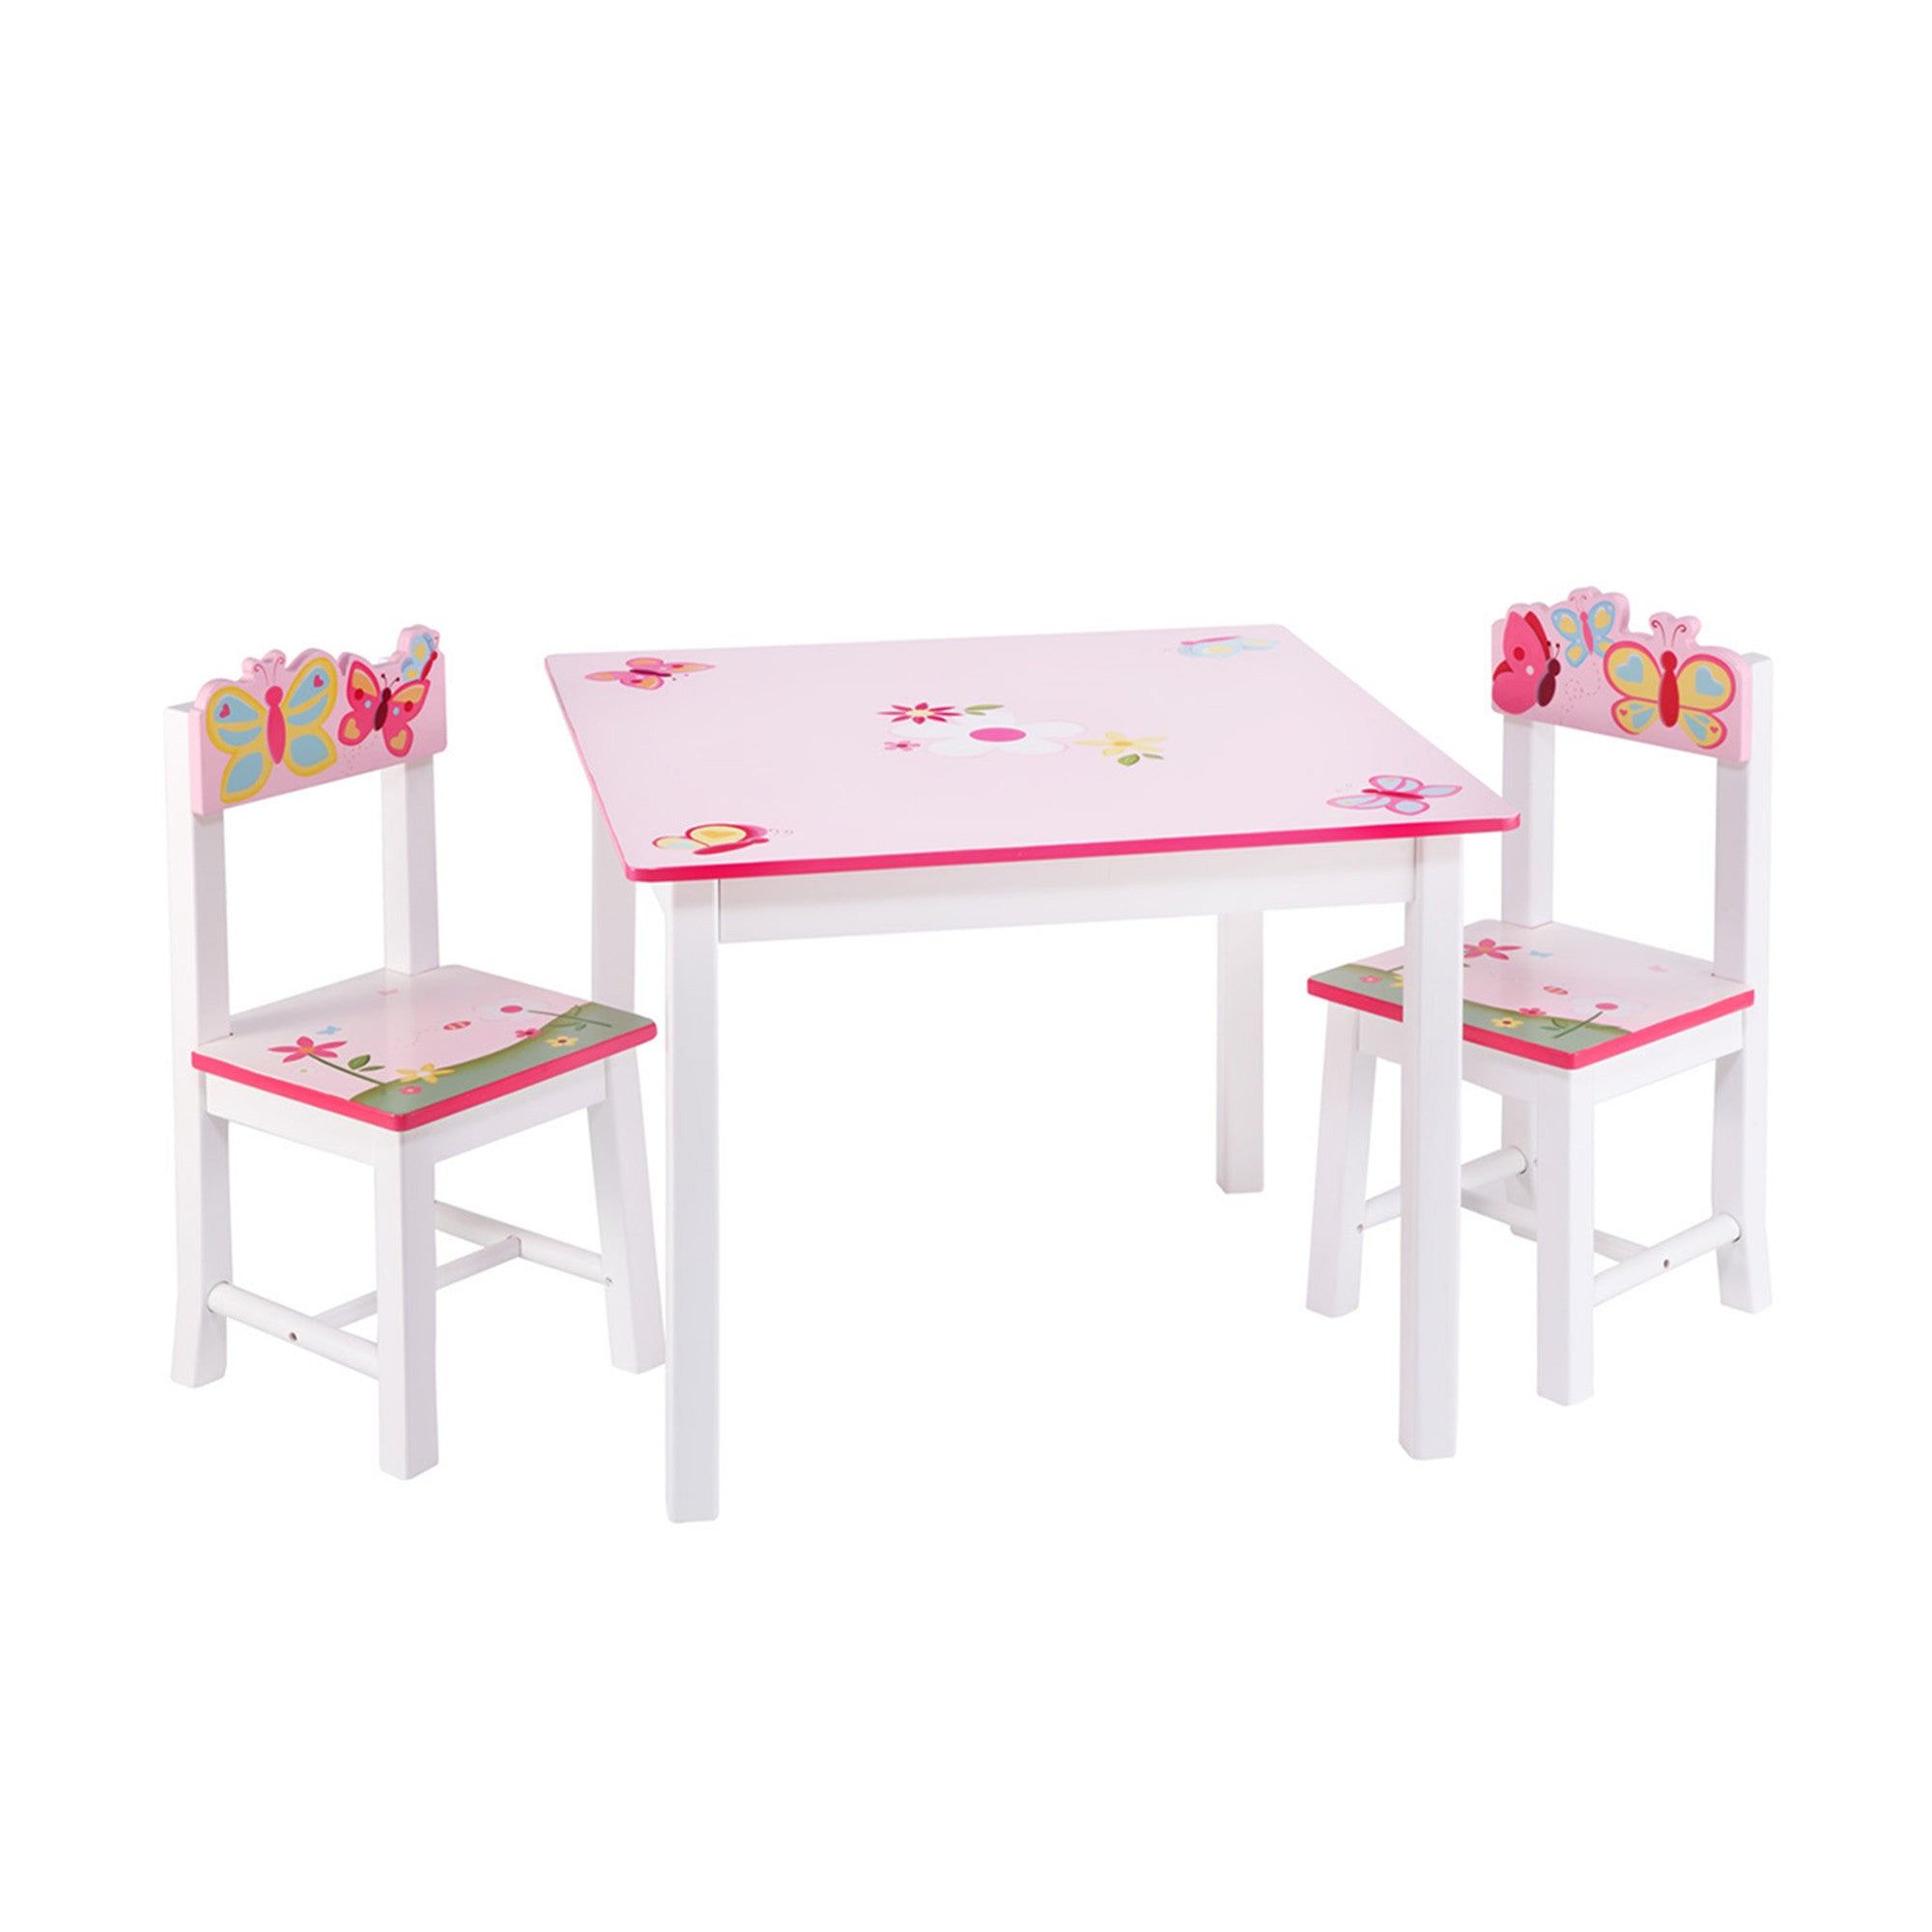 Guidecraft Butterfly Buddies Table & Chairs Set G86602